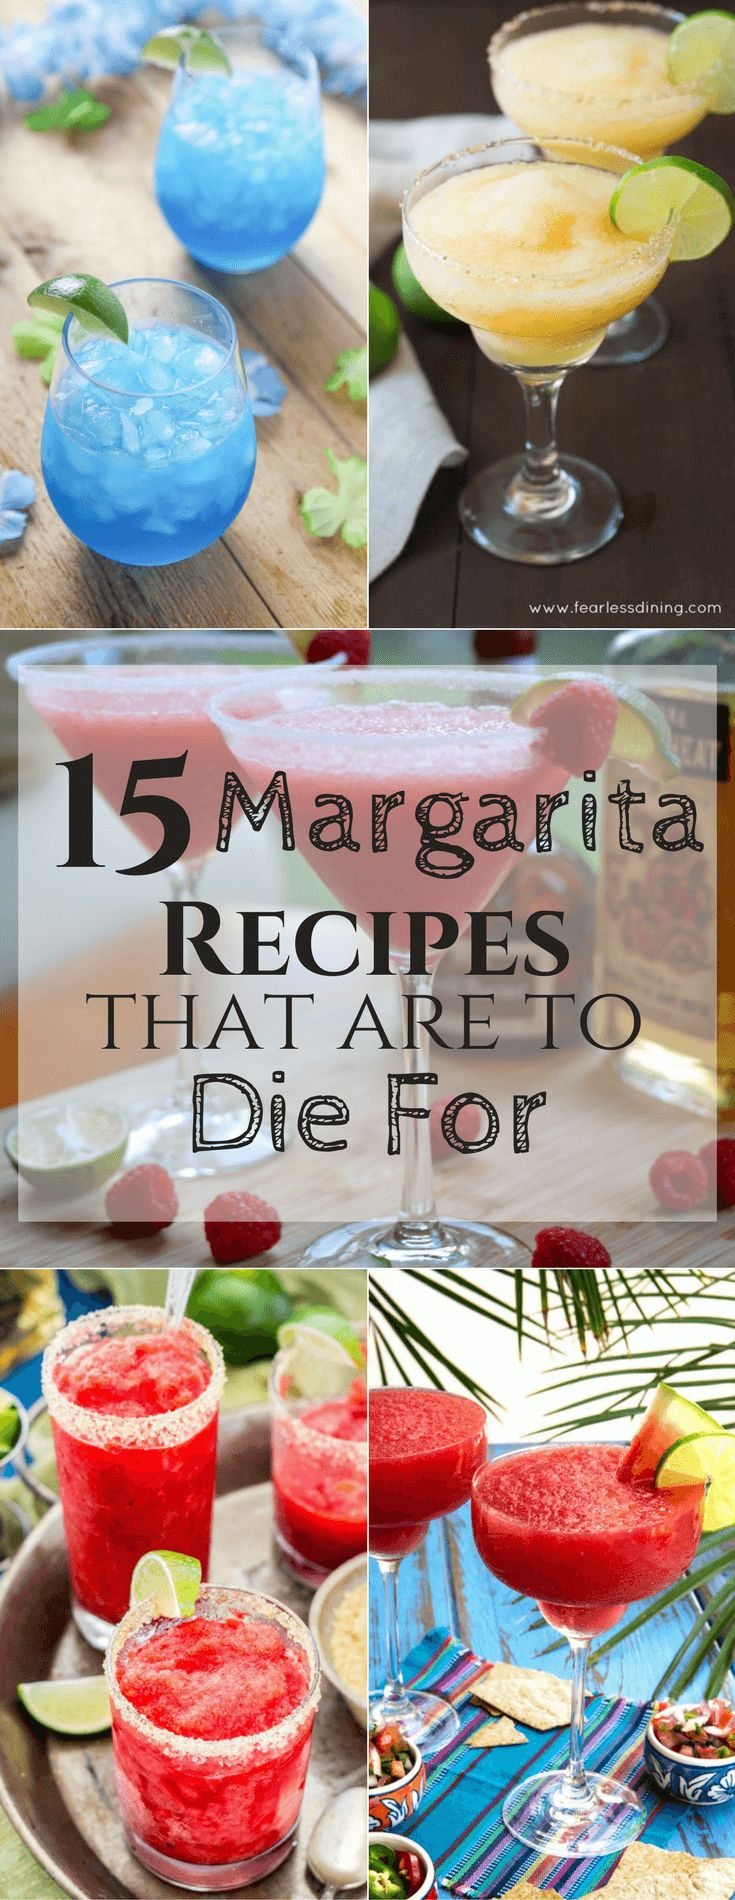 "Can't wait to try these different margarita recipes, including ""beer-ritas""!"